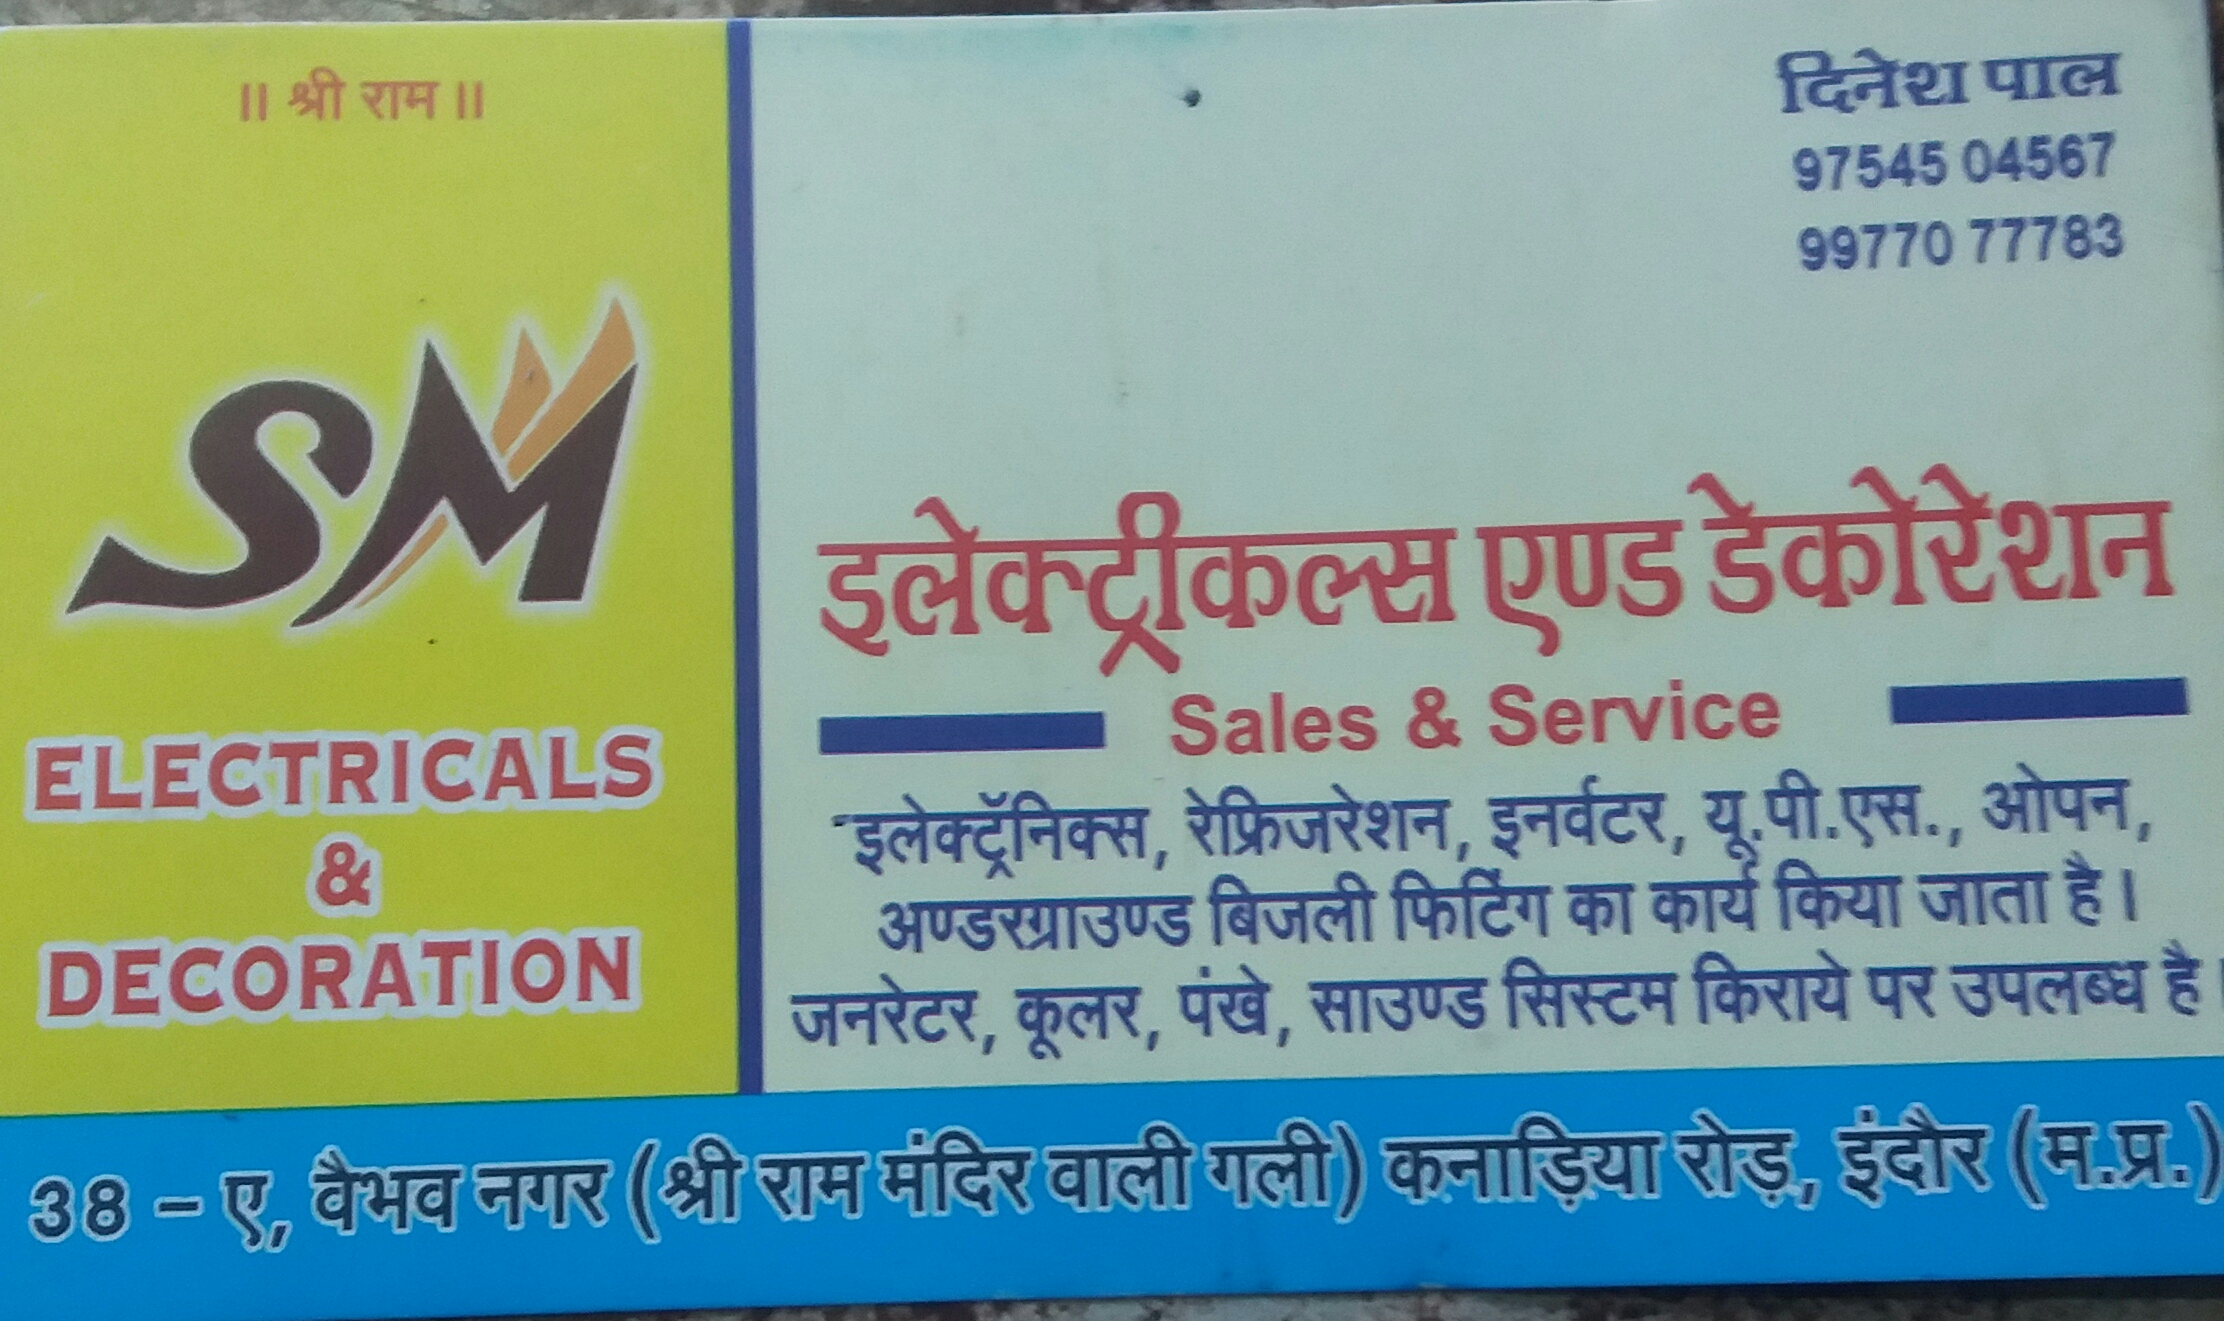 S M electricals and decoretion